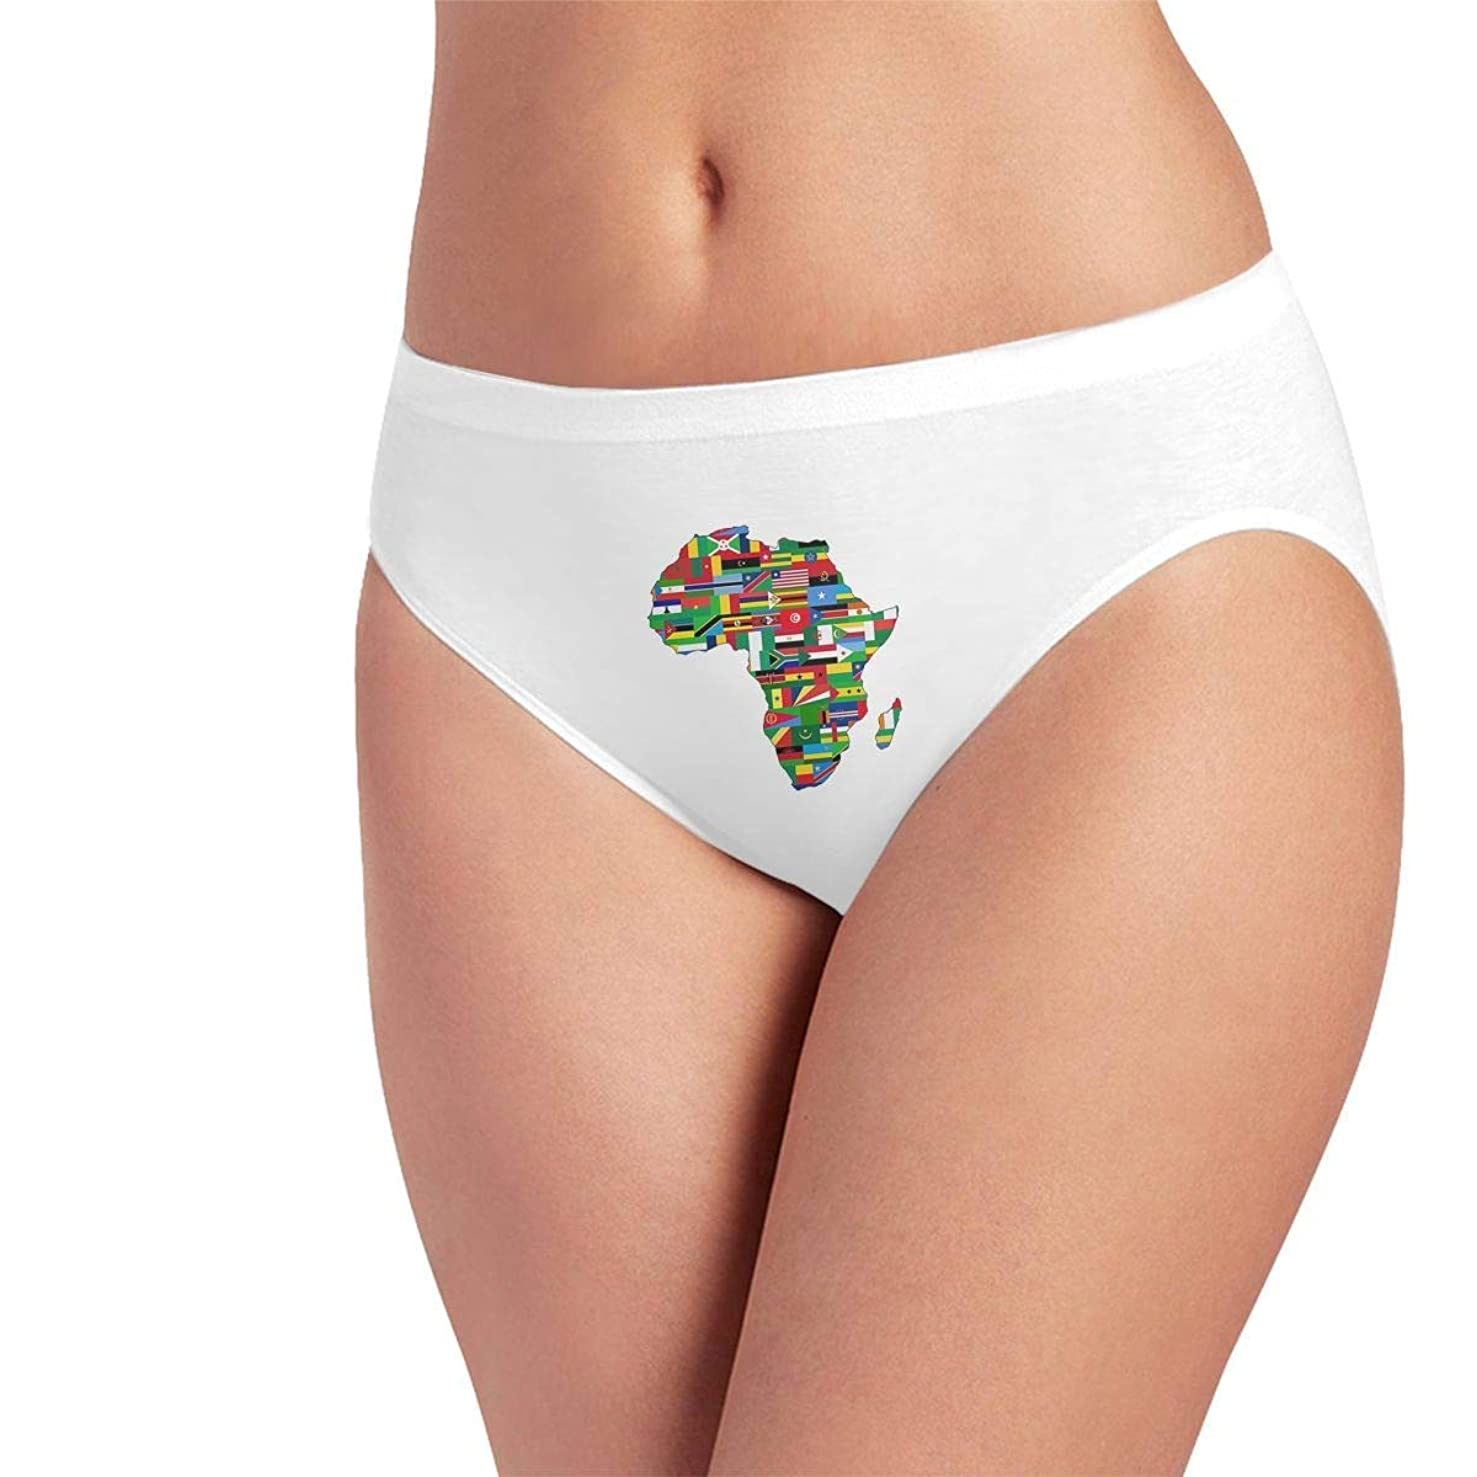 Ice Silk Briefs for Women Seamless Panty African American Pride Underwear No Panty Line Hipsters